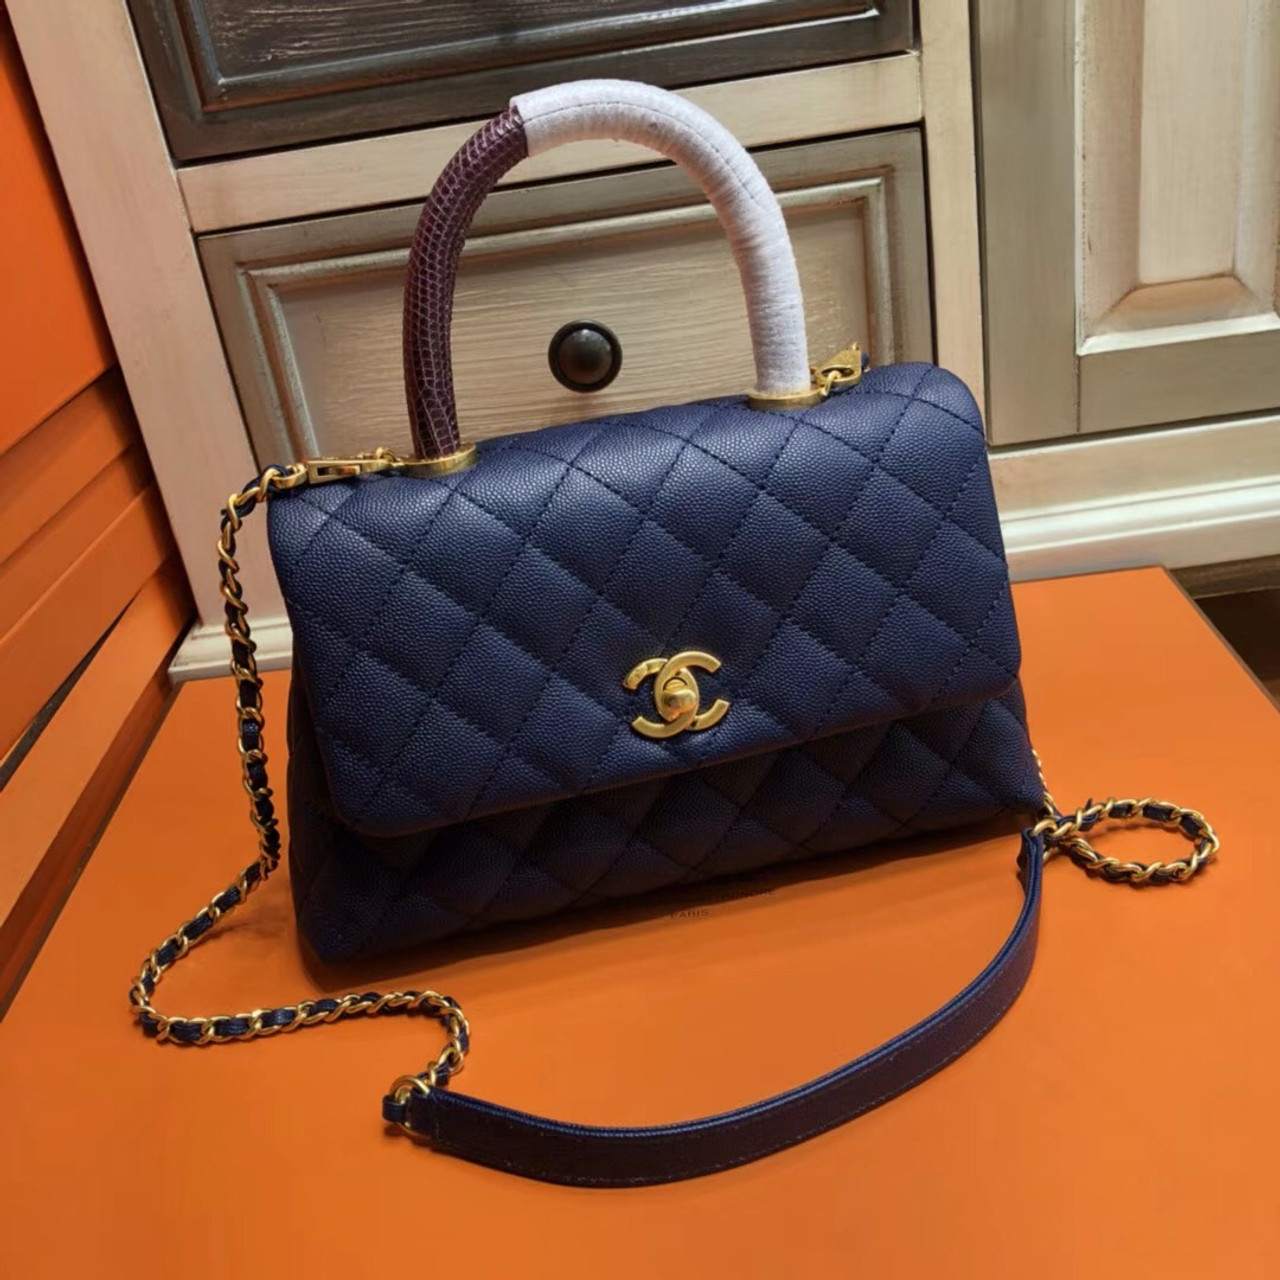 9fb5c97274ca Chanel Blue Calfskin/Lizard Coco Handle Small Bag 2 - Bella Vita Moda